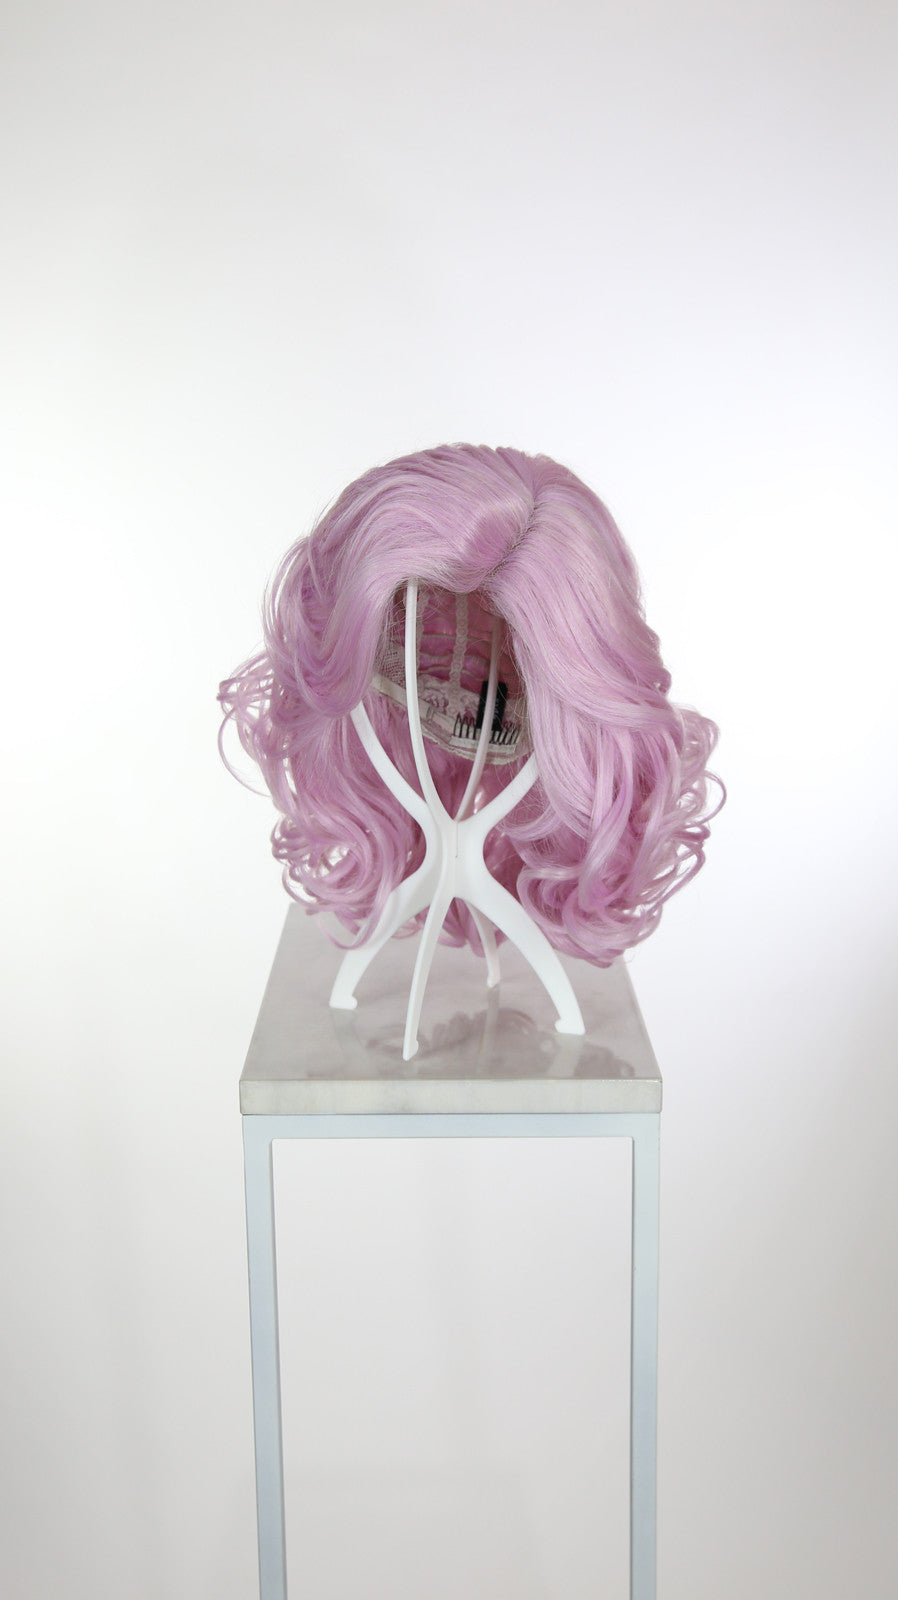 Wig Stand from Pose Wigs great for lace front wigs fashion wigs displaying drag queen wigs